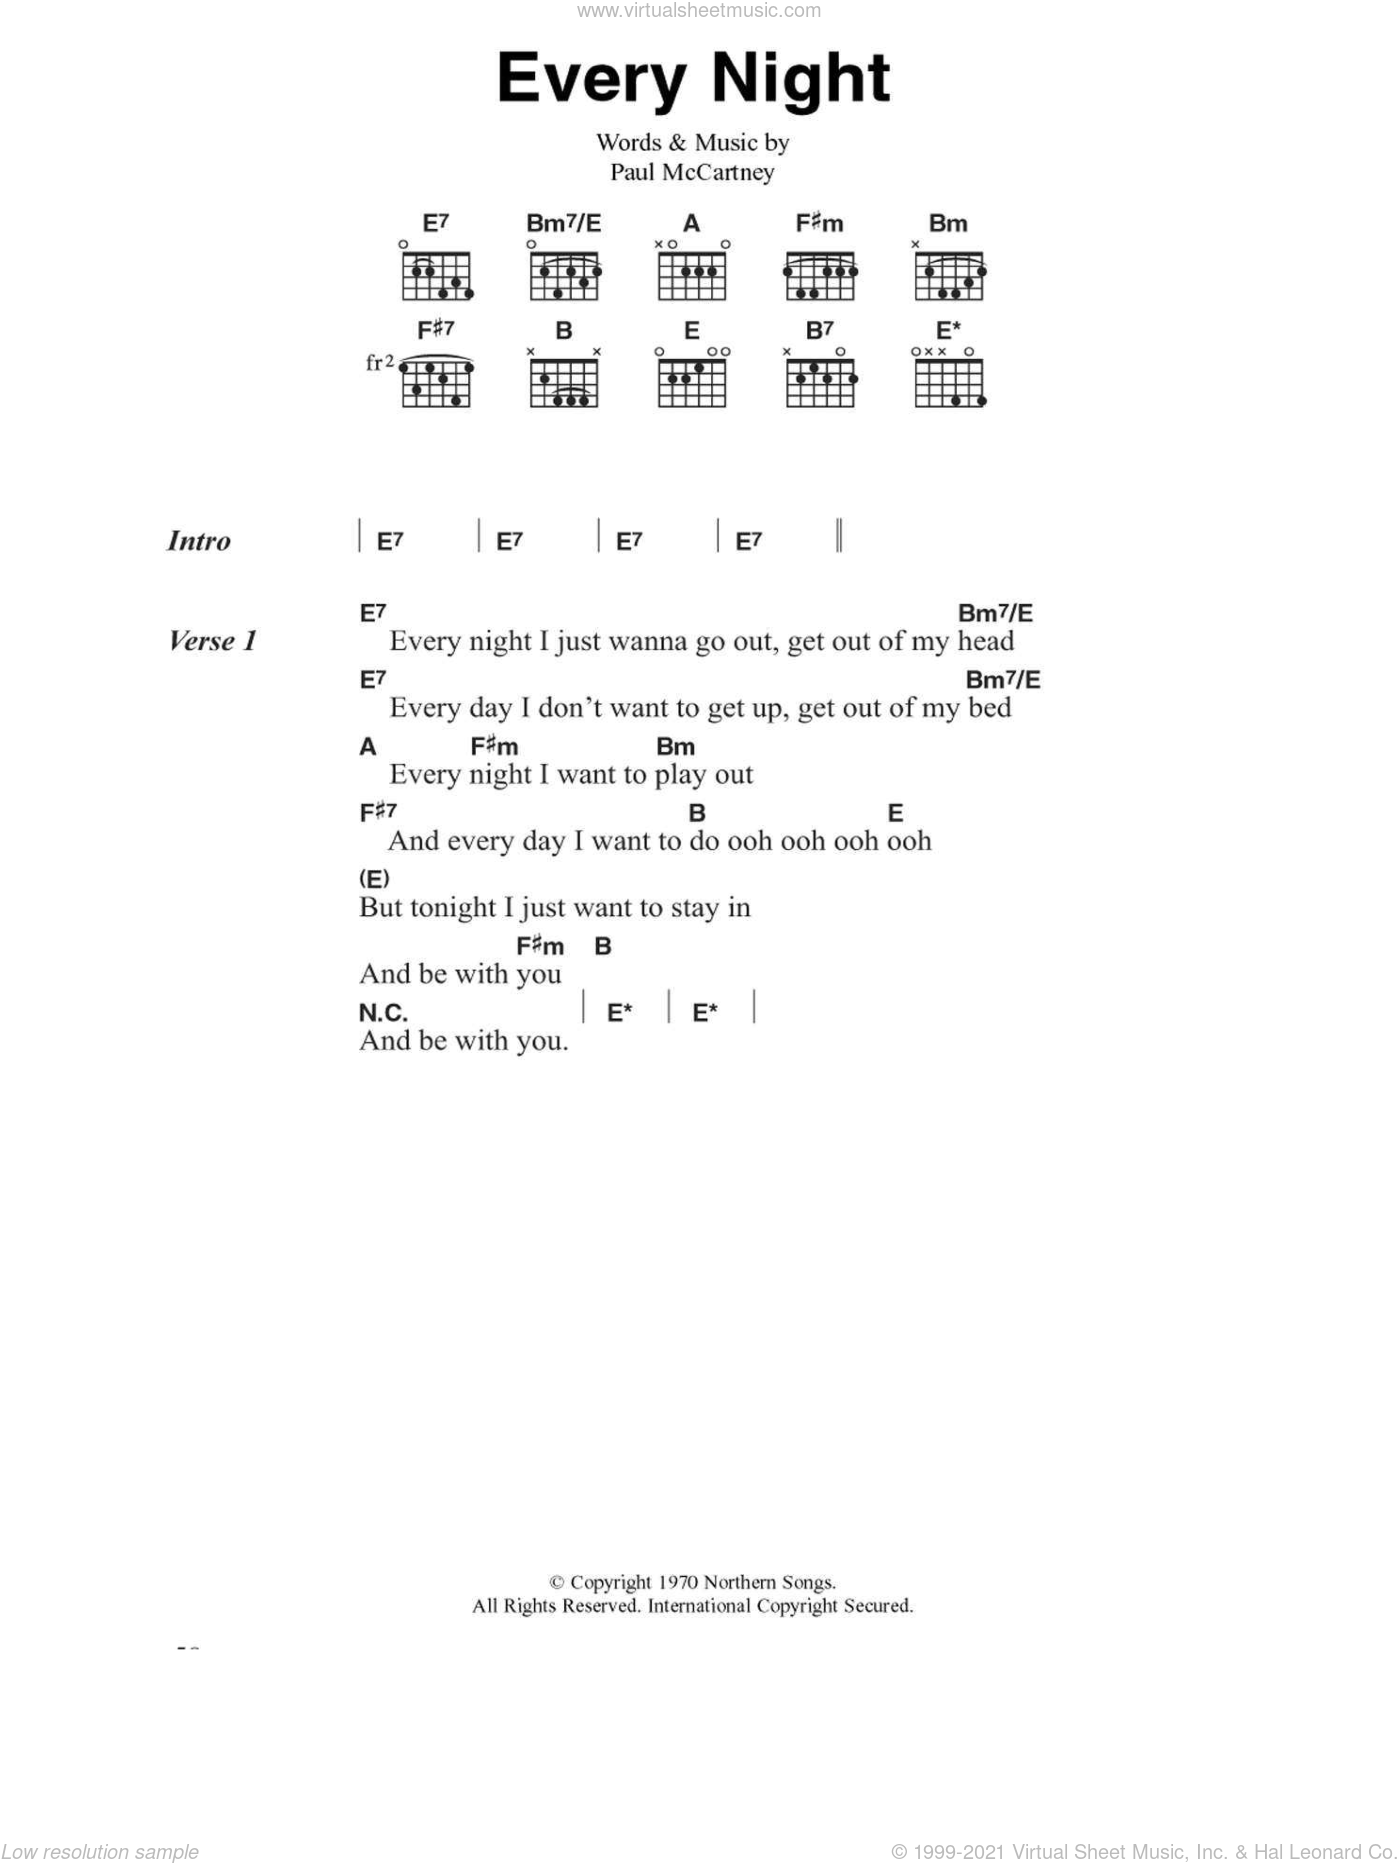 Every Night sheet music for guitar (chords) by Paul McCartney, intermediate. Score Image Preview.